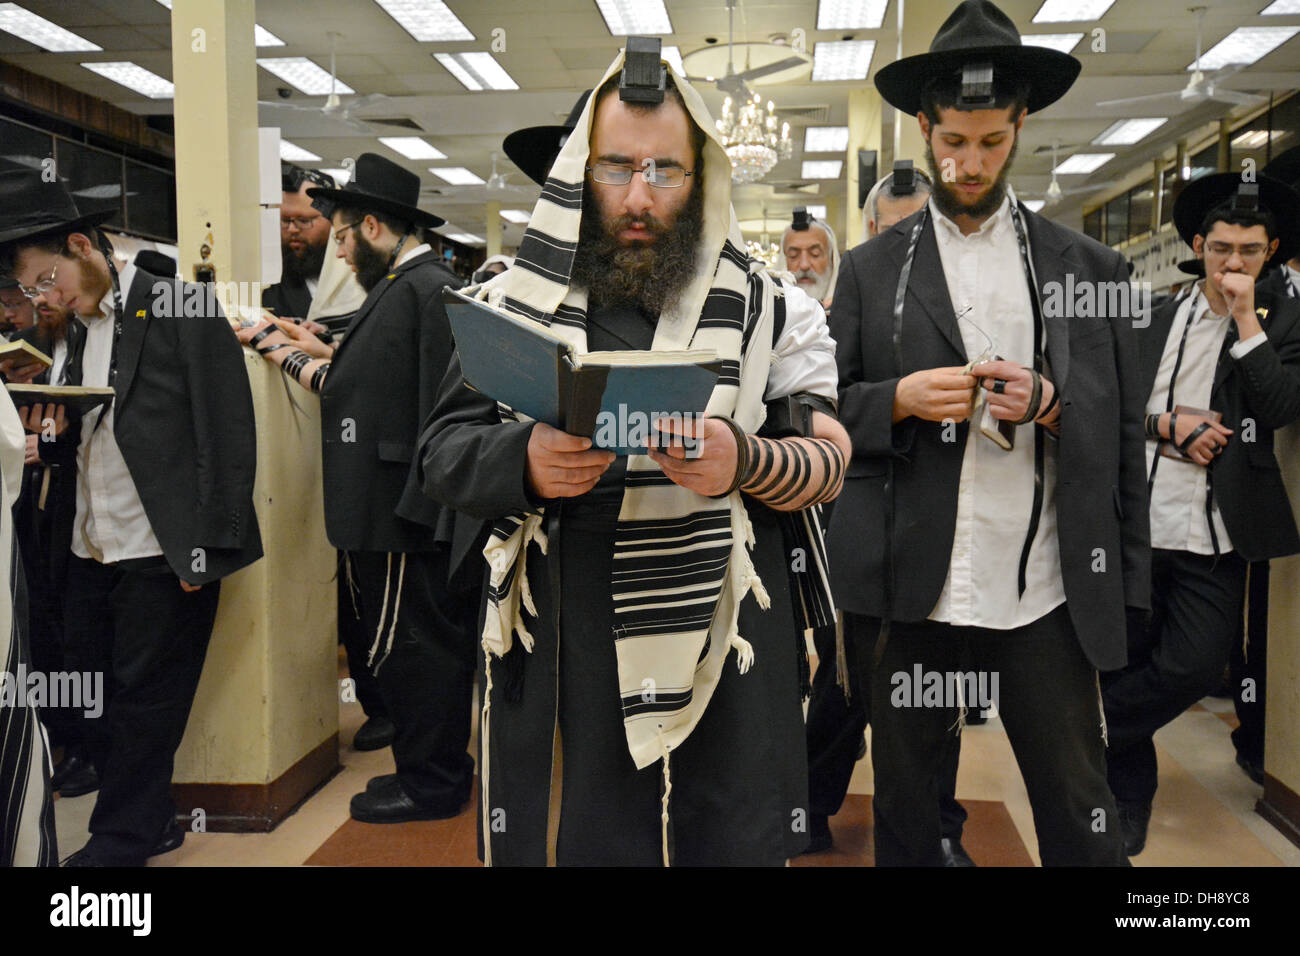 Group of religious Jews praying wearing Teffilin, phylacteries, and a prayer shawl at Lubavitch headquarters in Brooklyn, NY - Stock Image